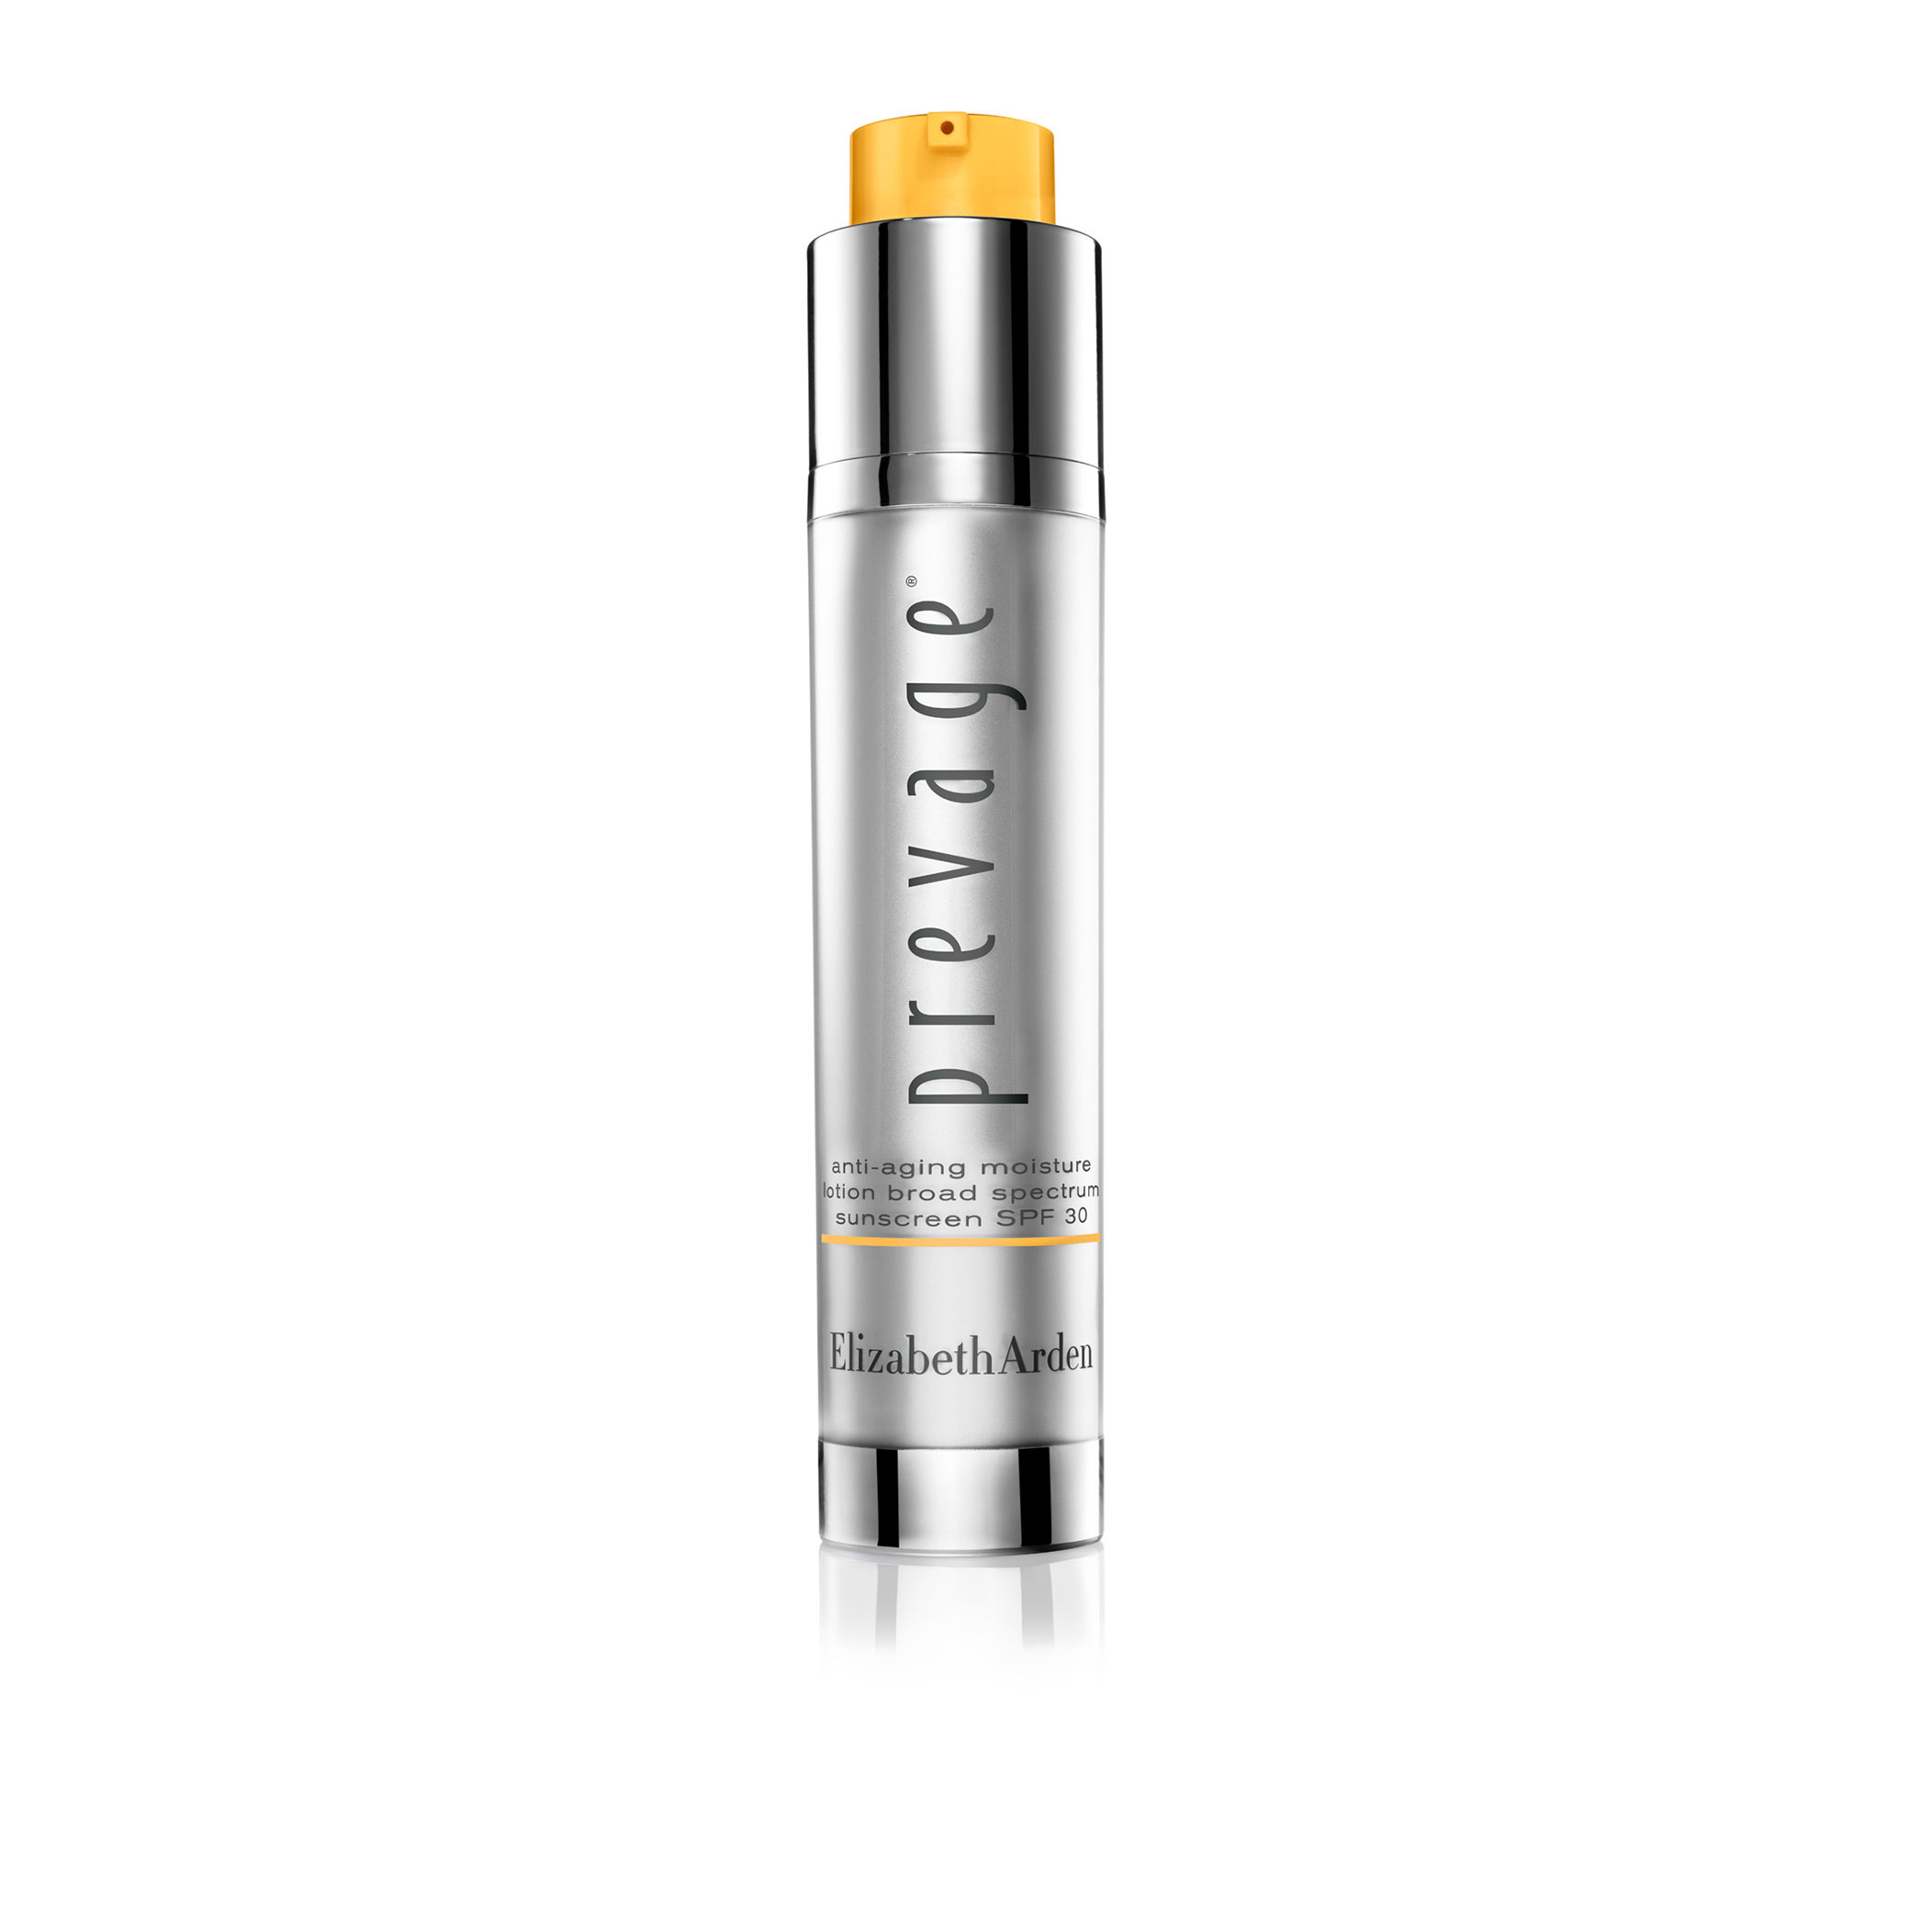 PREVAGE® Anti-Aging Moisture Lotion SPF 30, , large